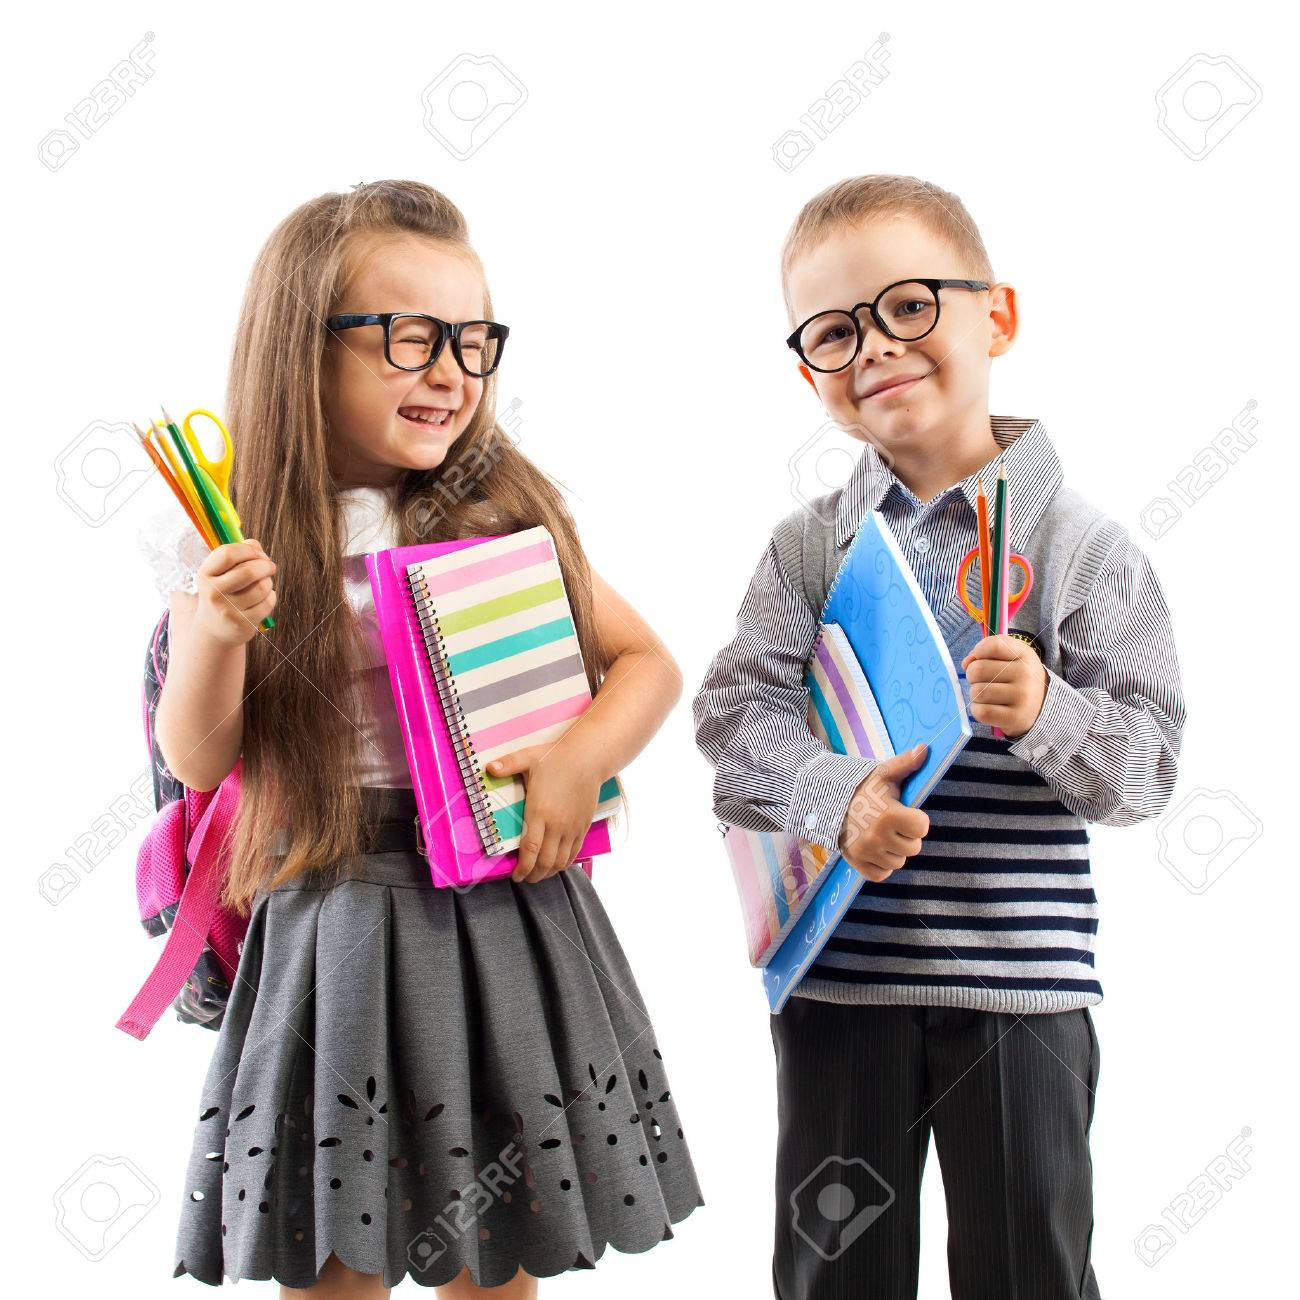 Two smiling school kids with colorful stationery, isolated on white background. School, education concept. - 31478086